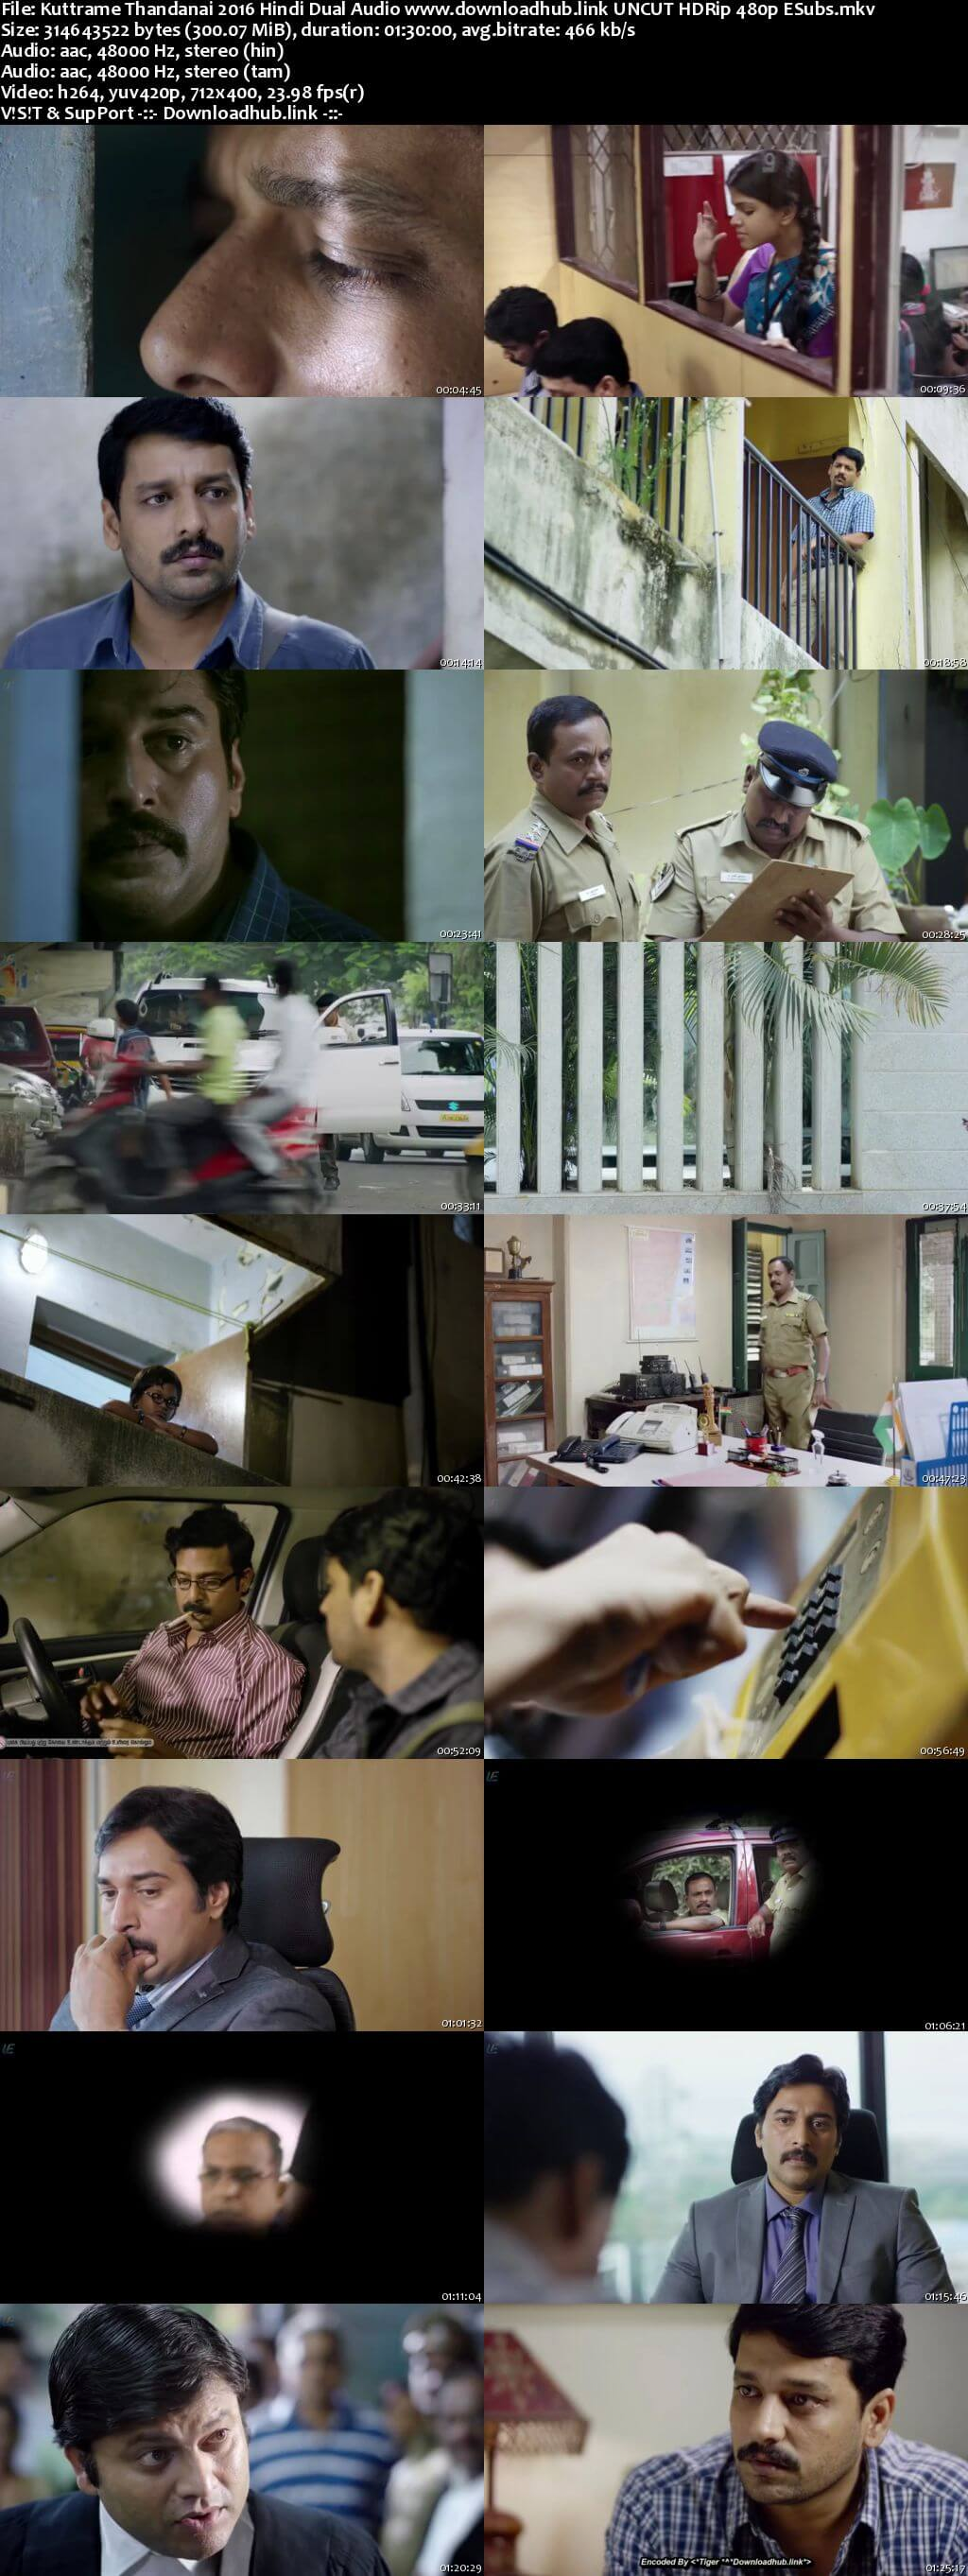 Kuttrame Thandanai 2016 Hindi Dual Audio 300MB UNCUT HDRip 480p ESubs